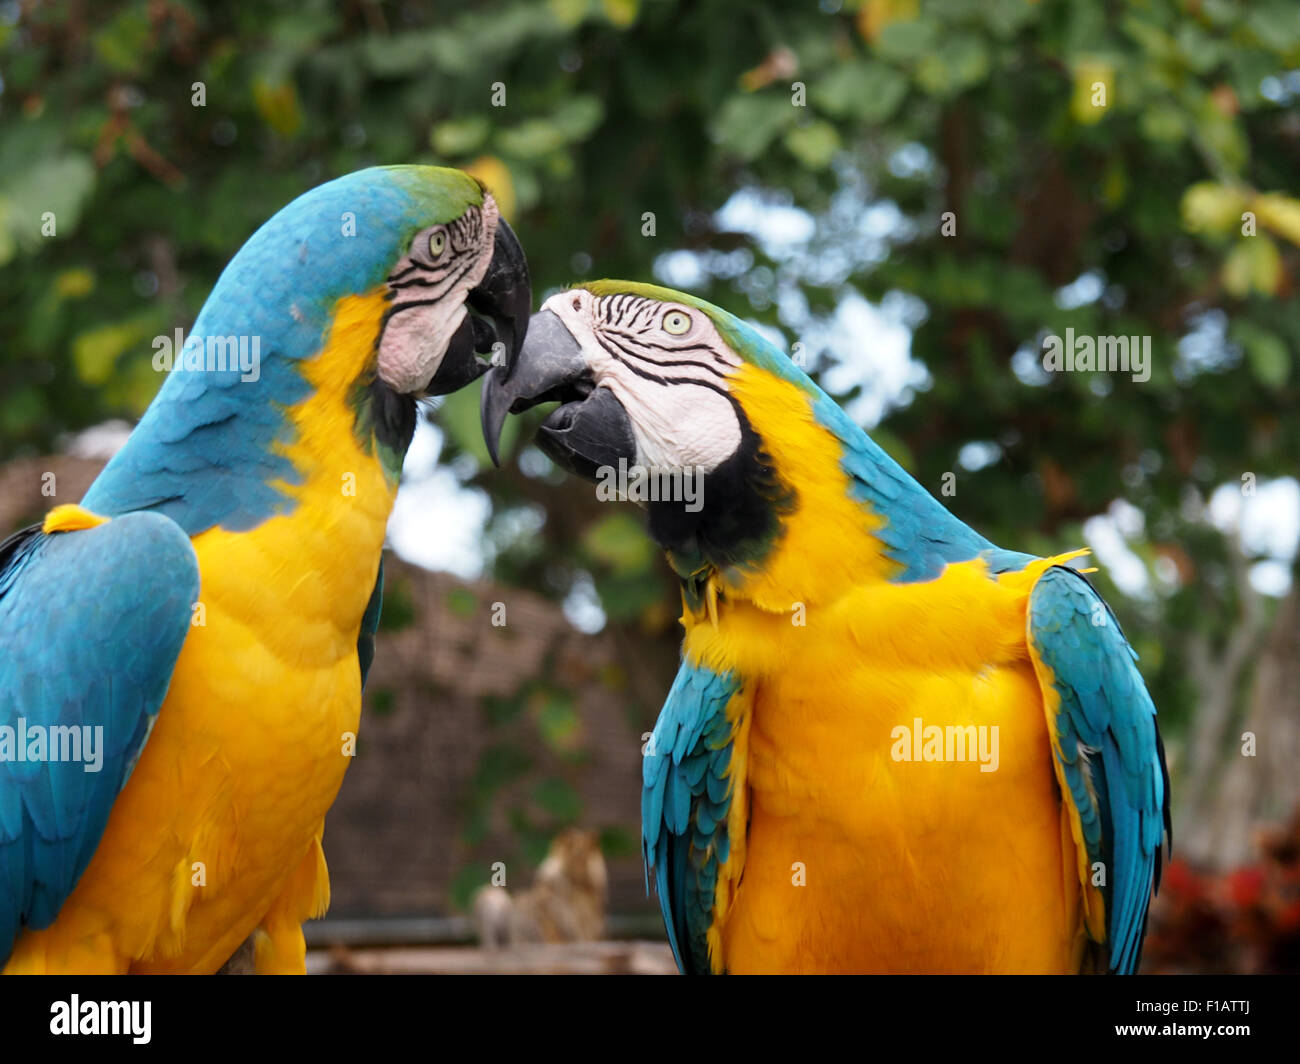 Pair of Yellow and Blue Macaws showing affection - Stock Image